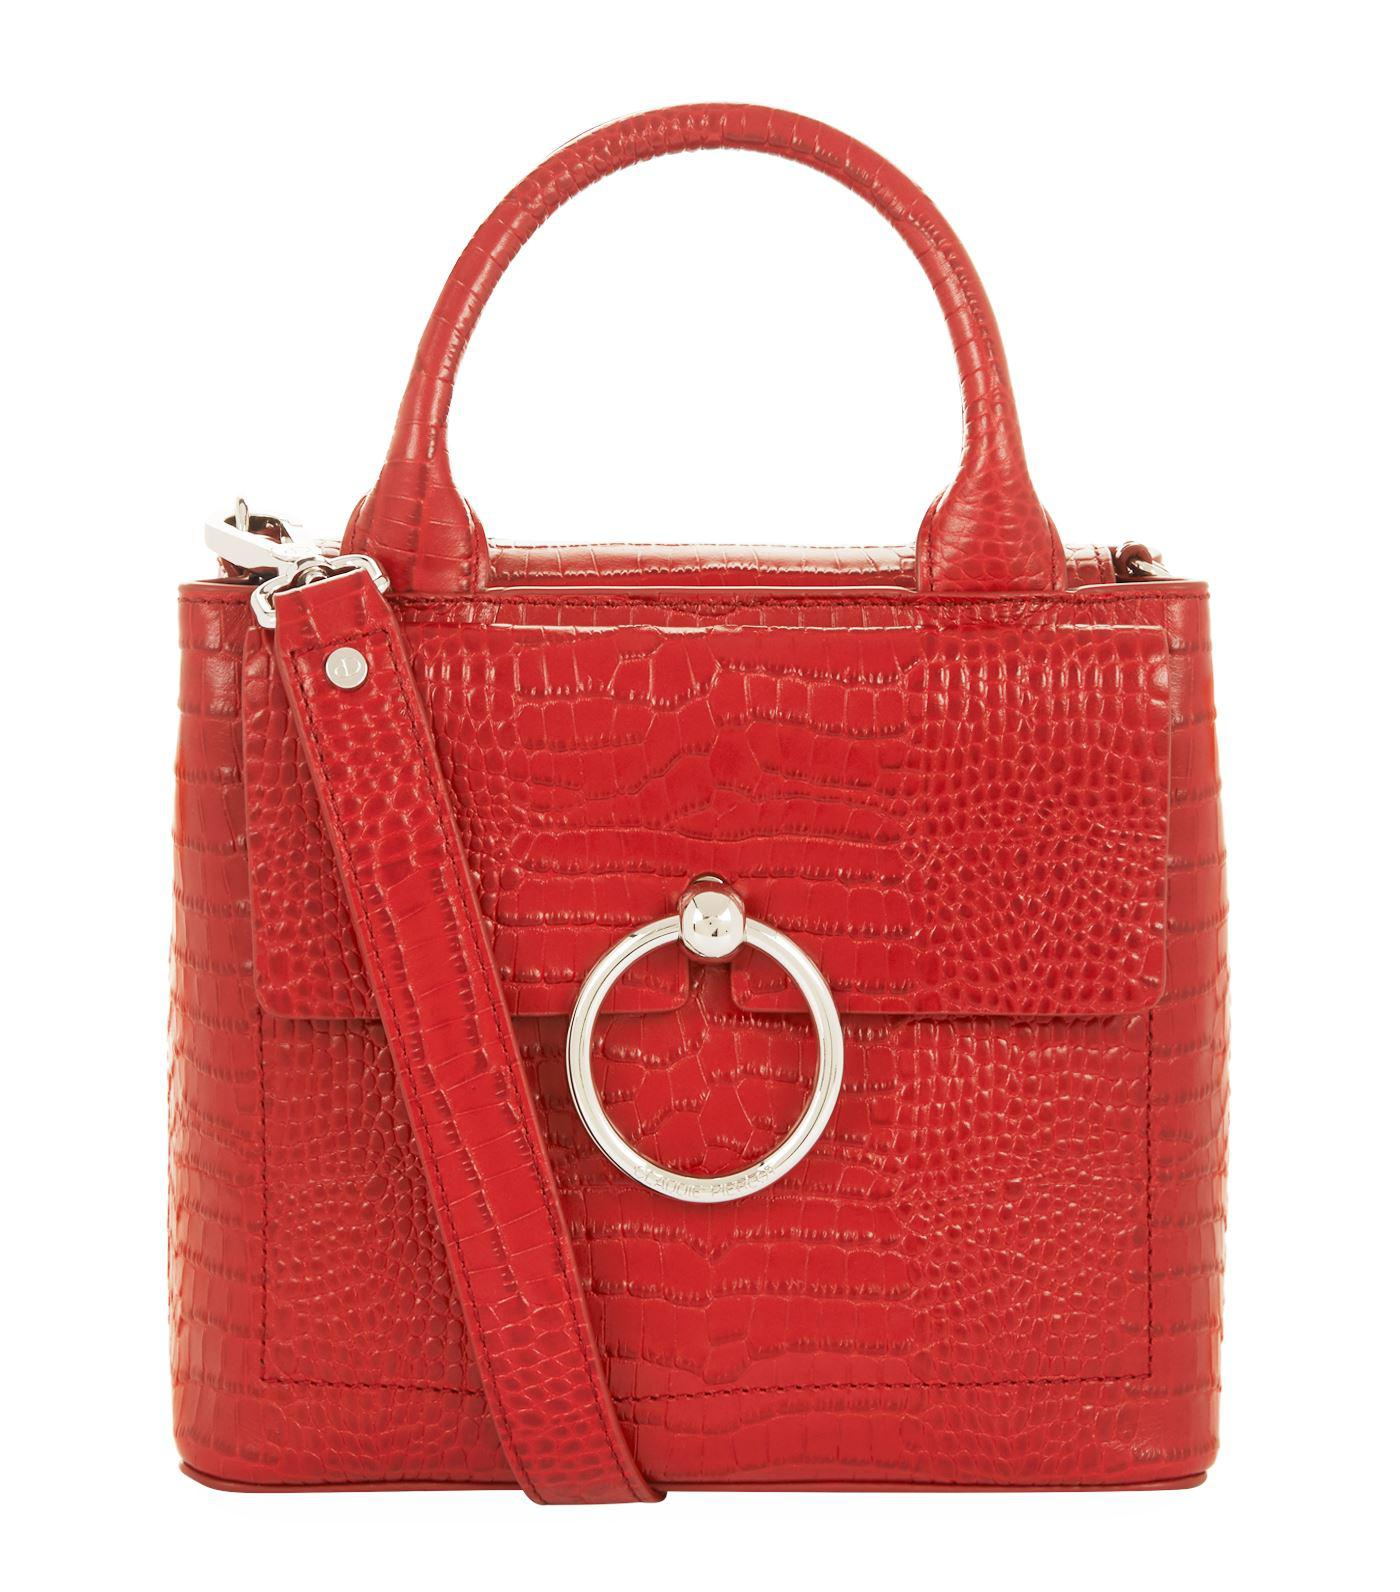 97c12c73e1e6 Claudie Pierlot Small Top Handle Bag in Red - Lyst